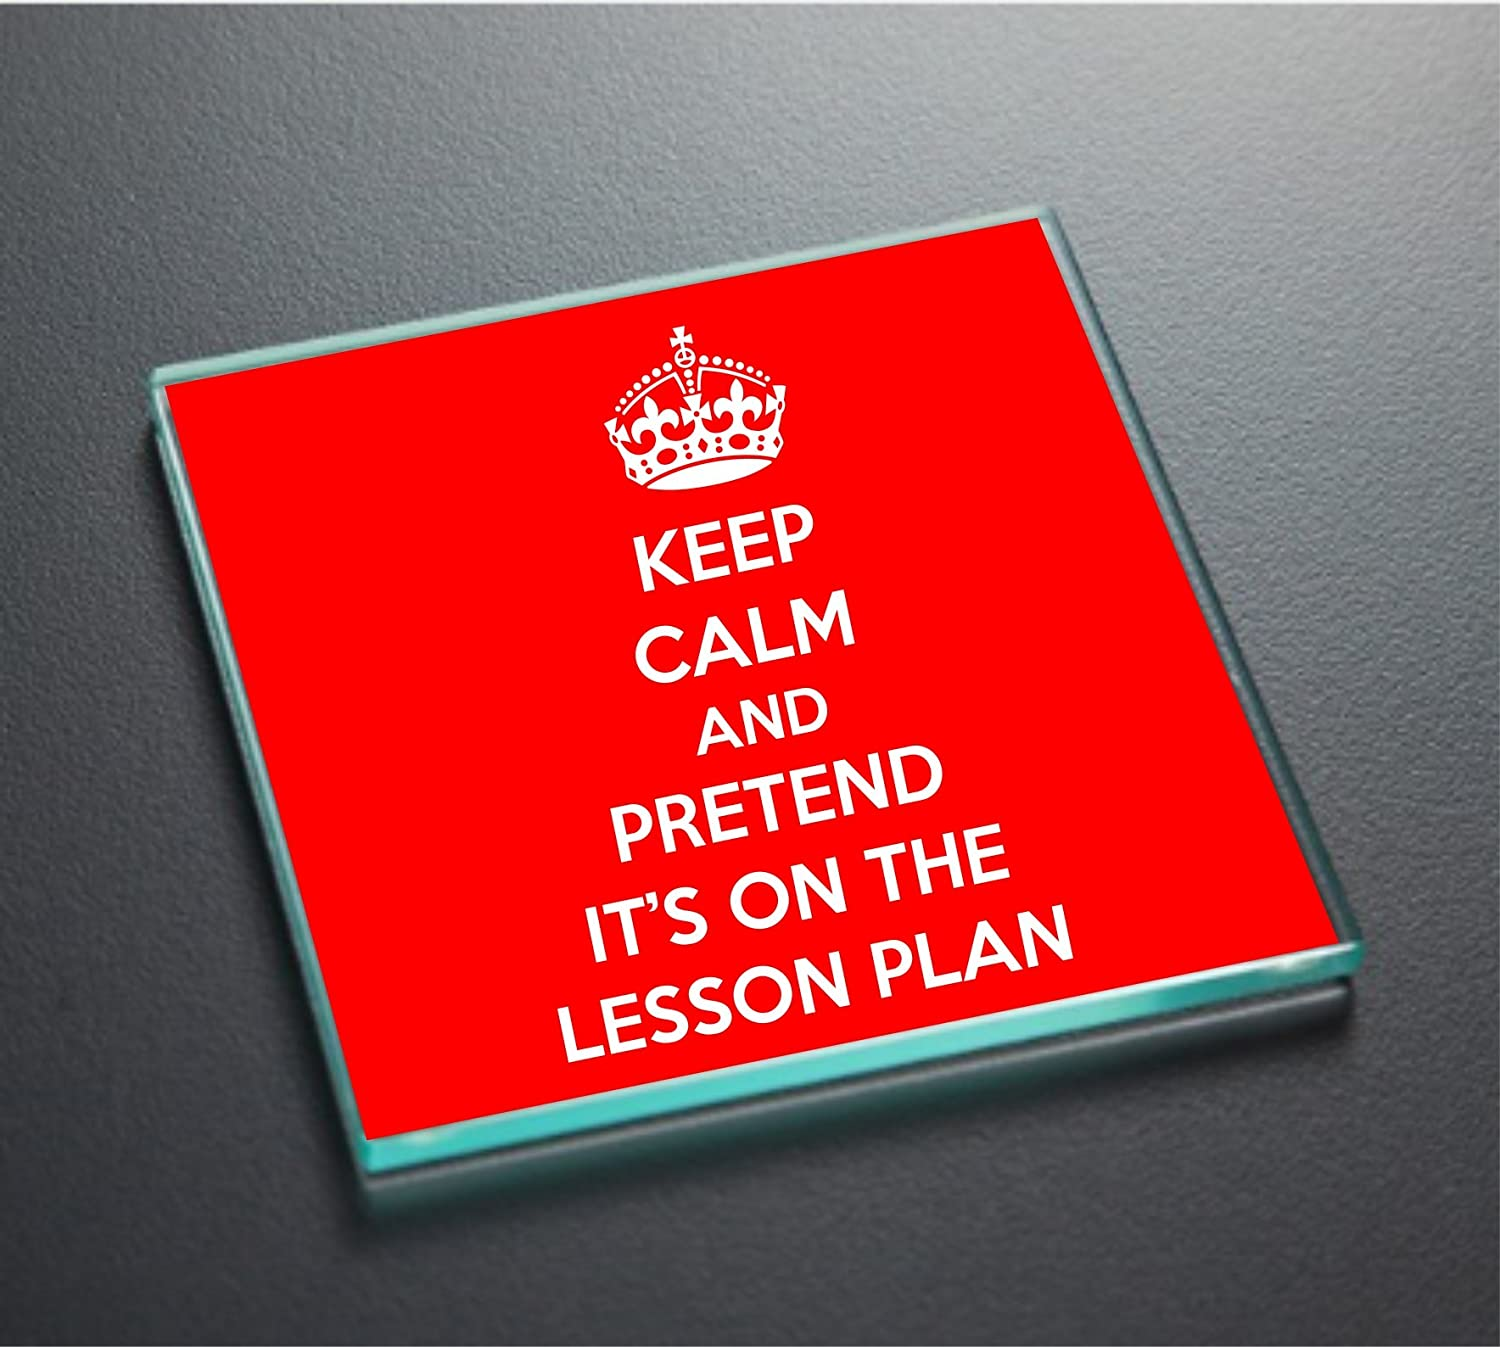 Keep Calm and Pretend Its On The Lesson Plan Red Glass Coaster